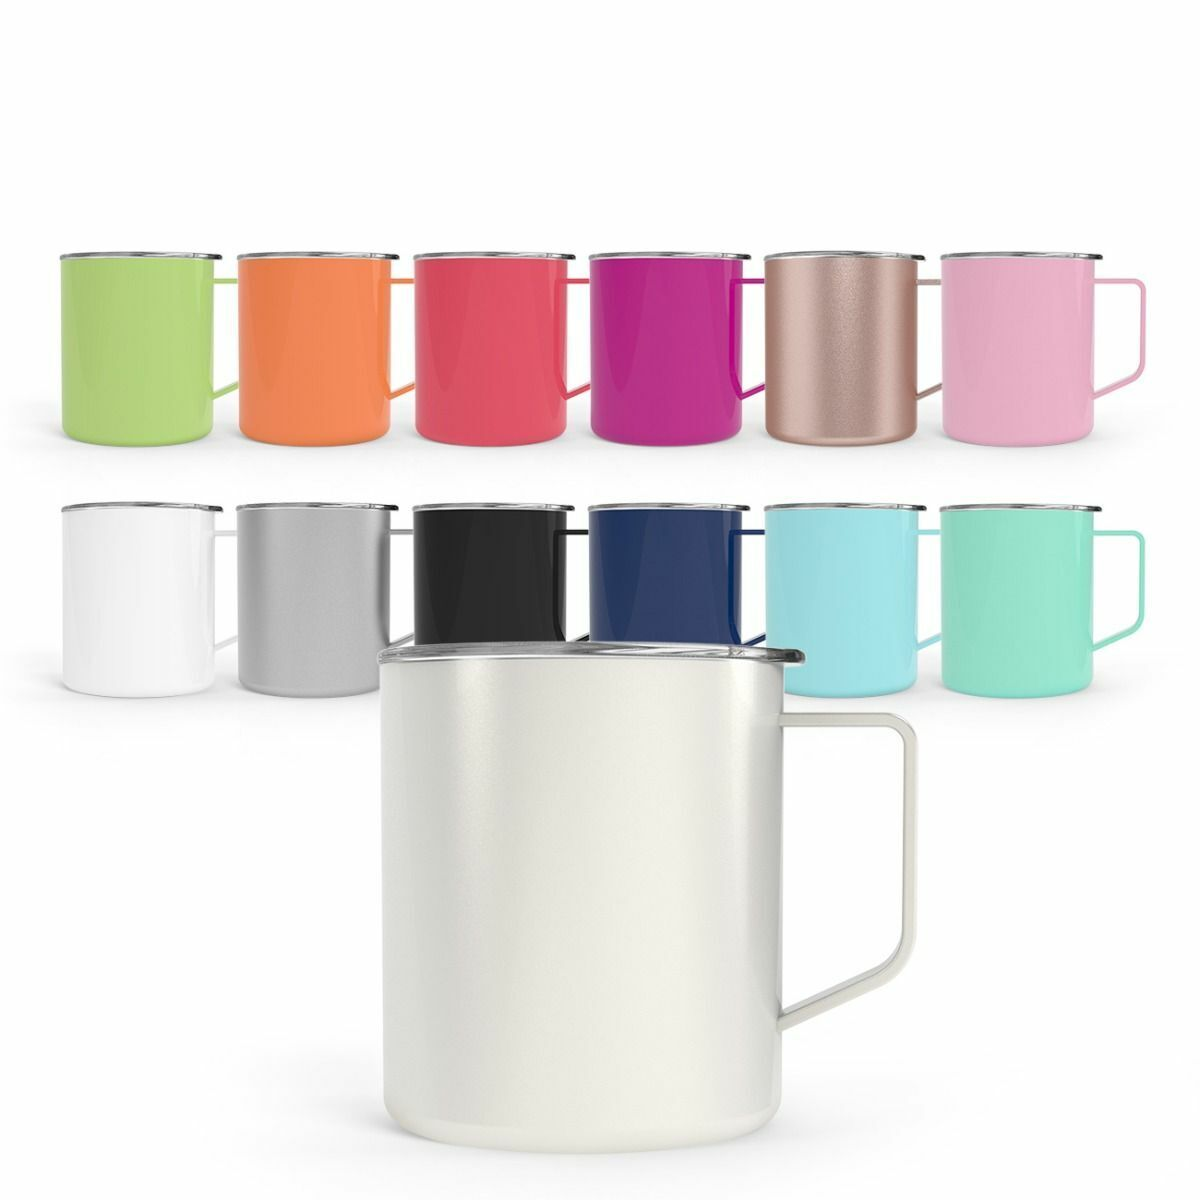 Stainless Steel Insulated Coffee Mug Double Wall Vacuum Seal